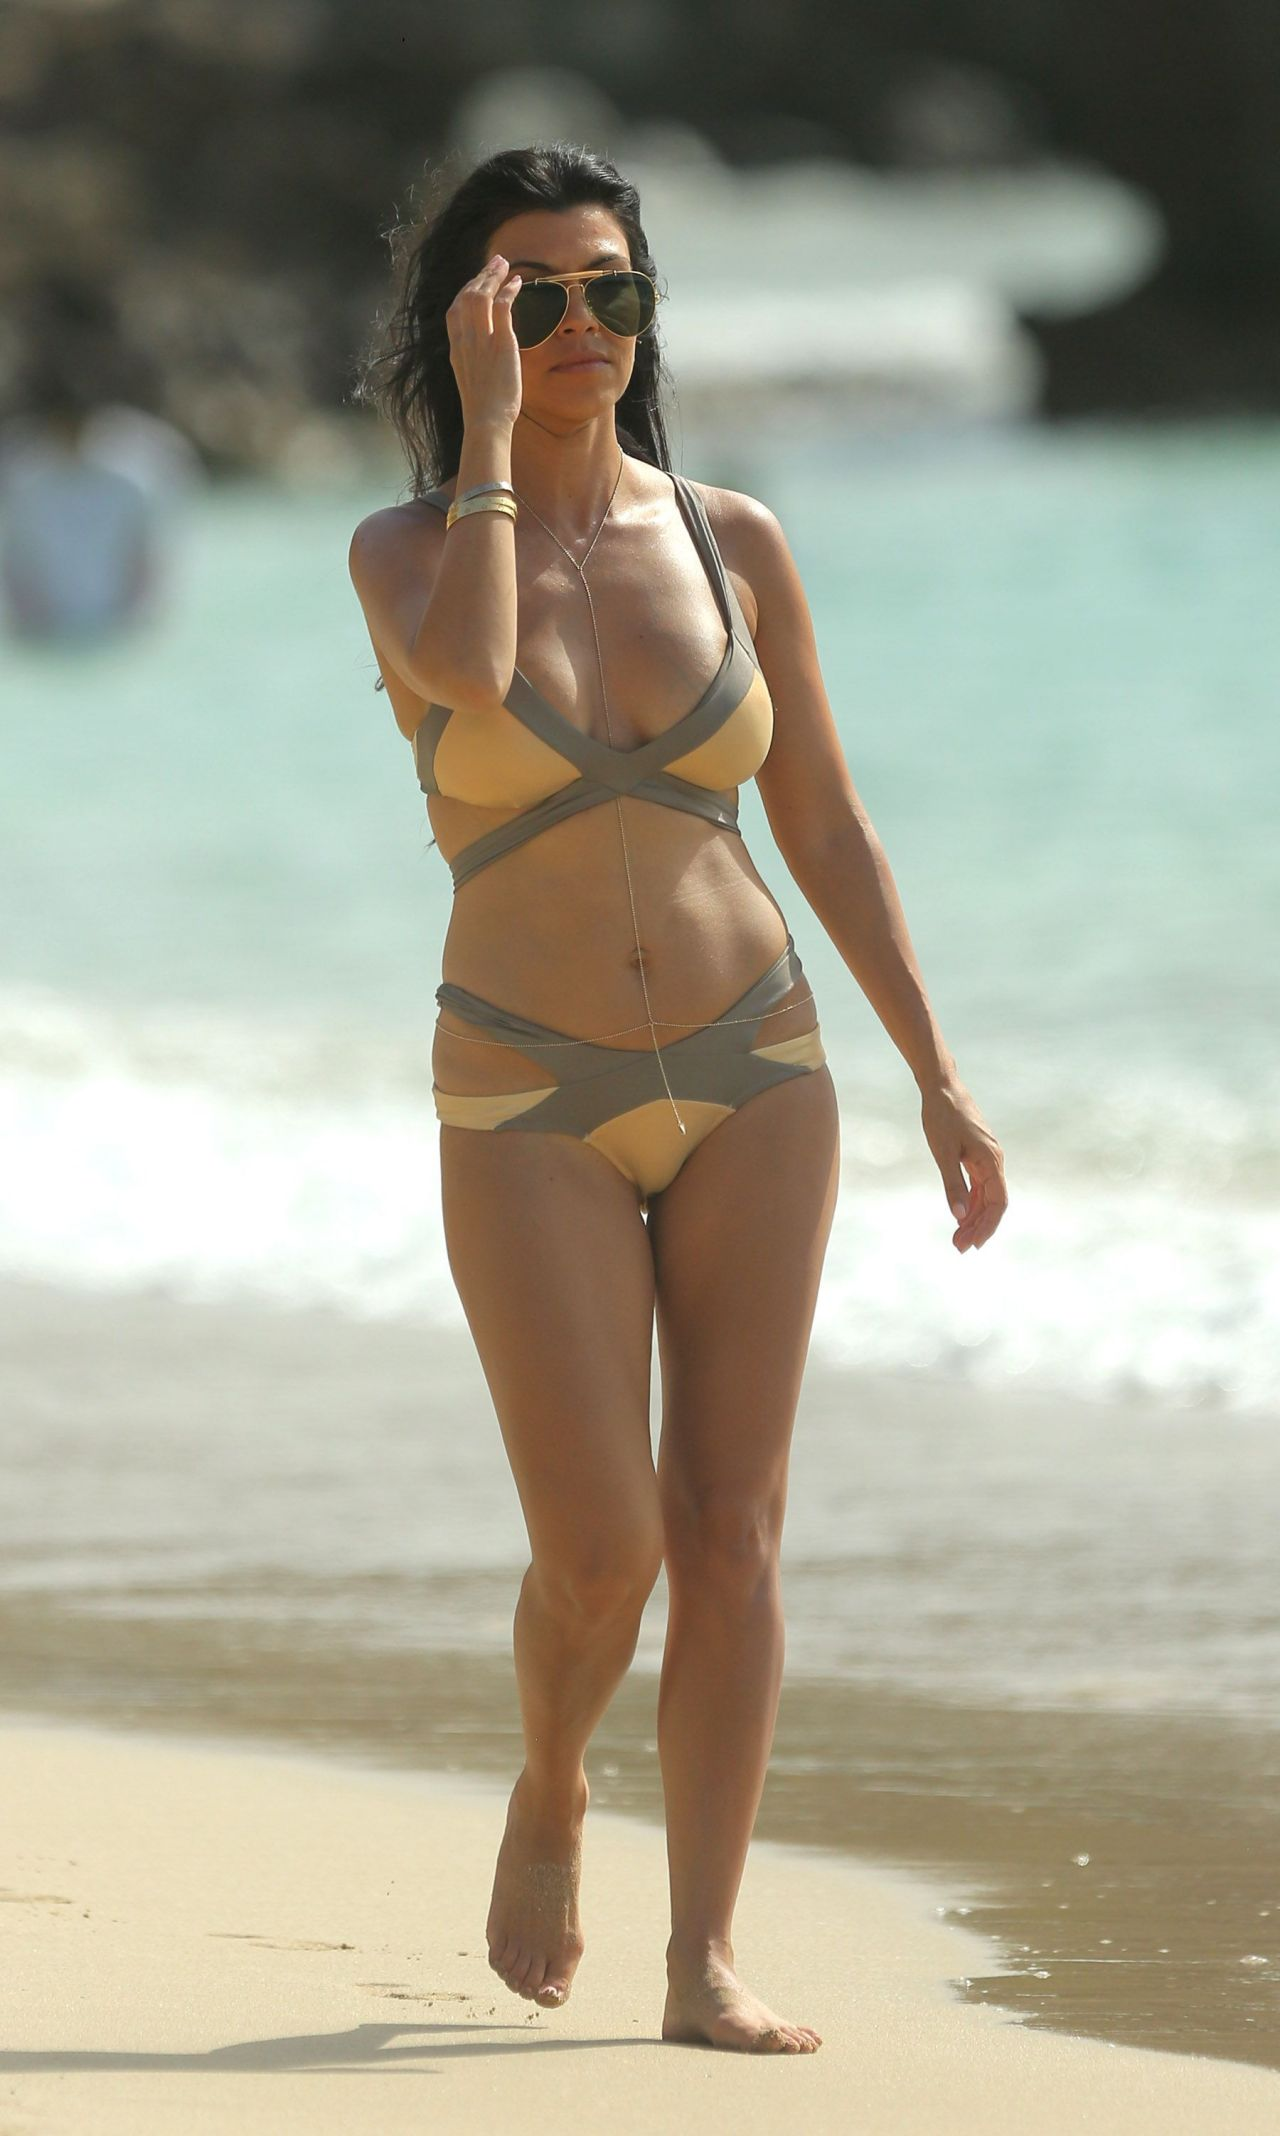 kourtney-kardashian-bikini-pics-on-vacation-at-the-beach-in-st.-barts-august-2015_4